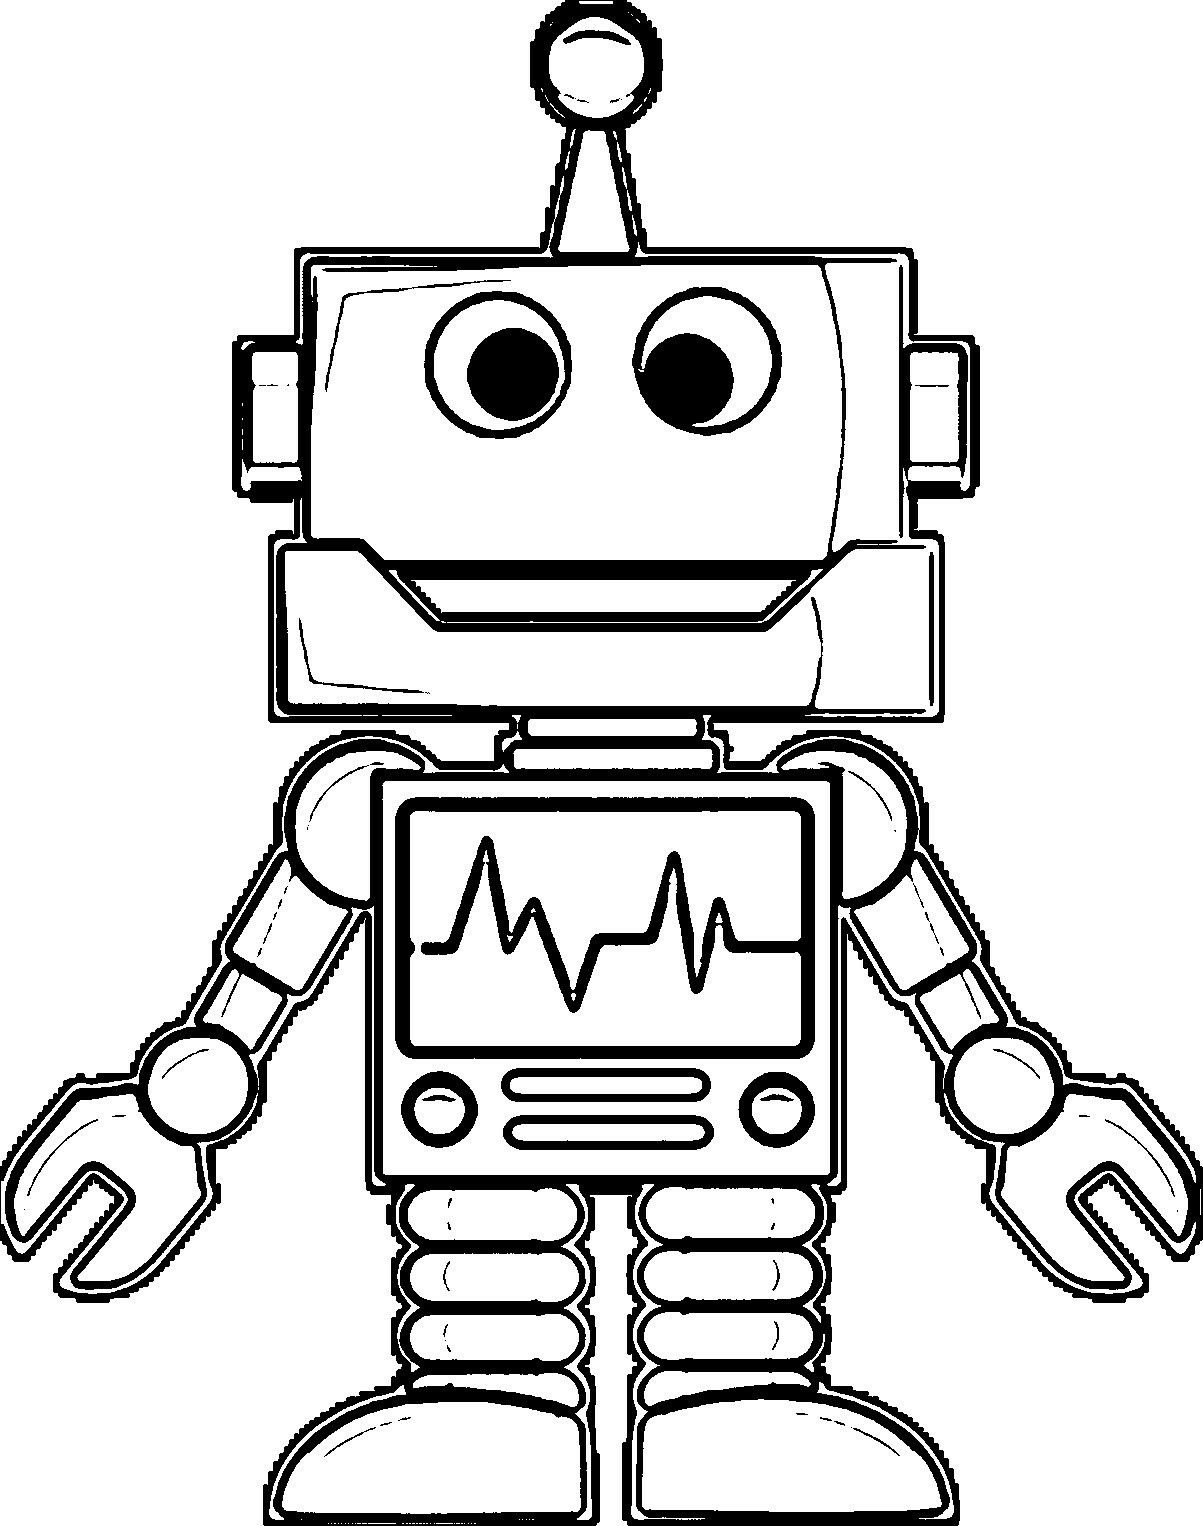 Pin By Kelsey Huber On Coloring Pages Robots Drawing Robots